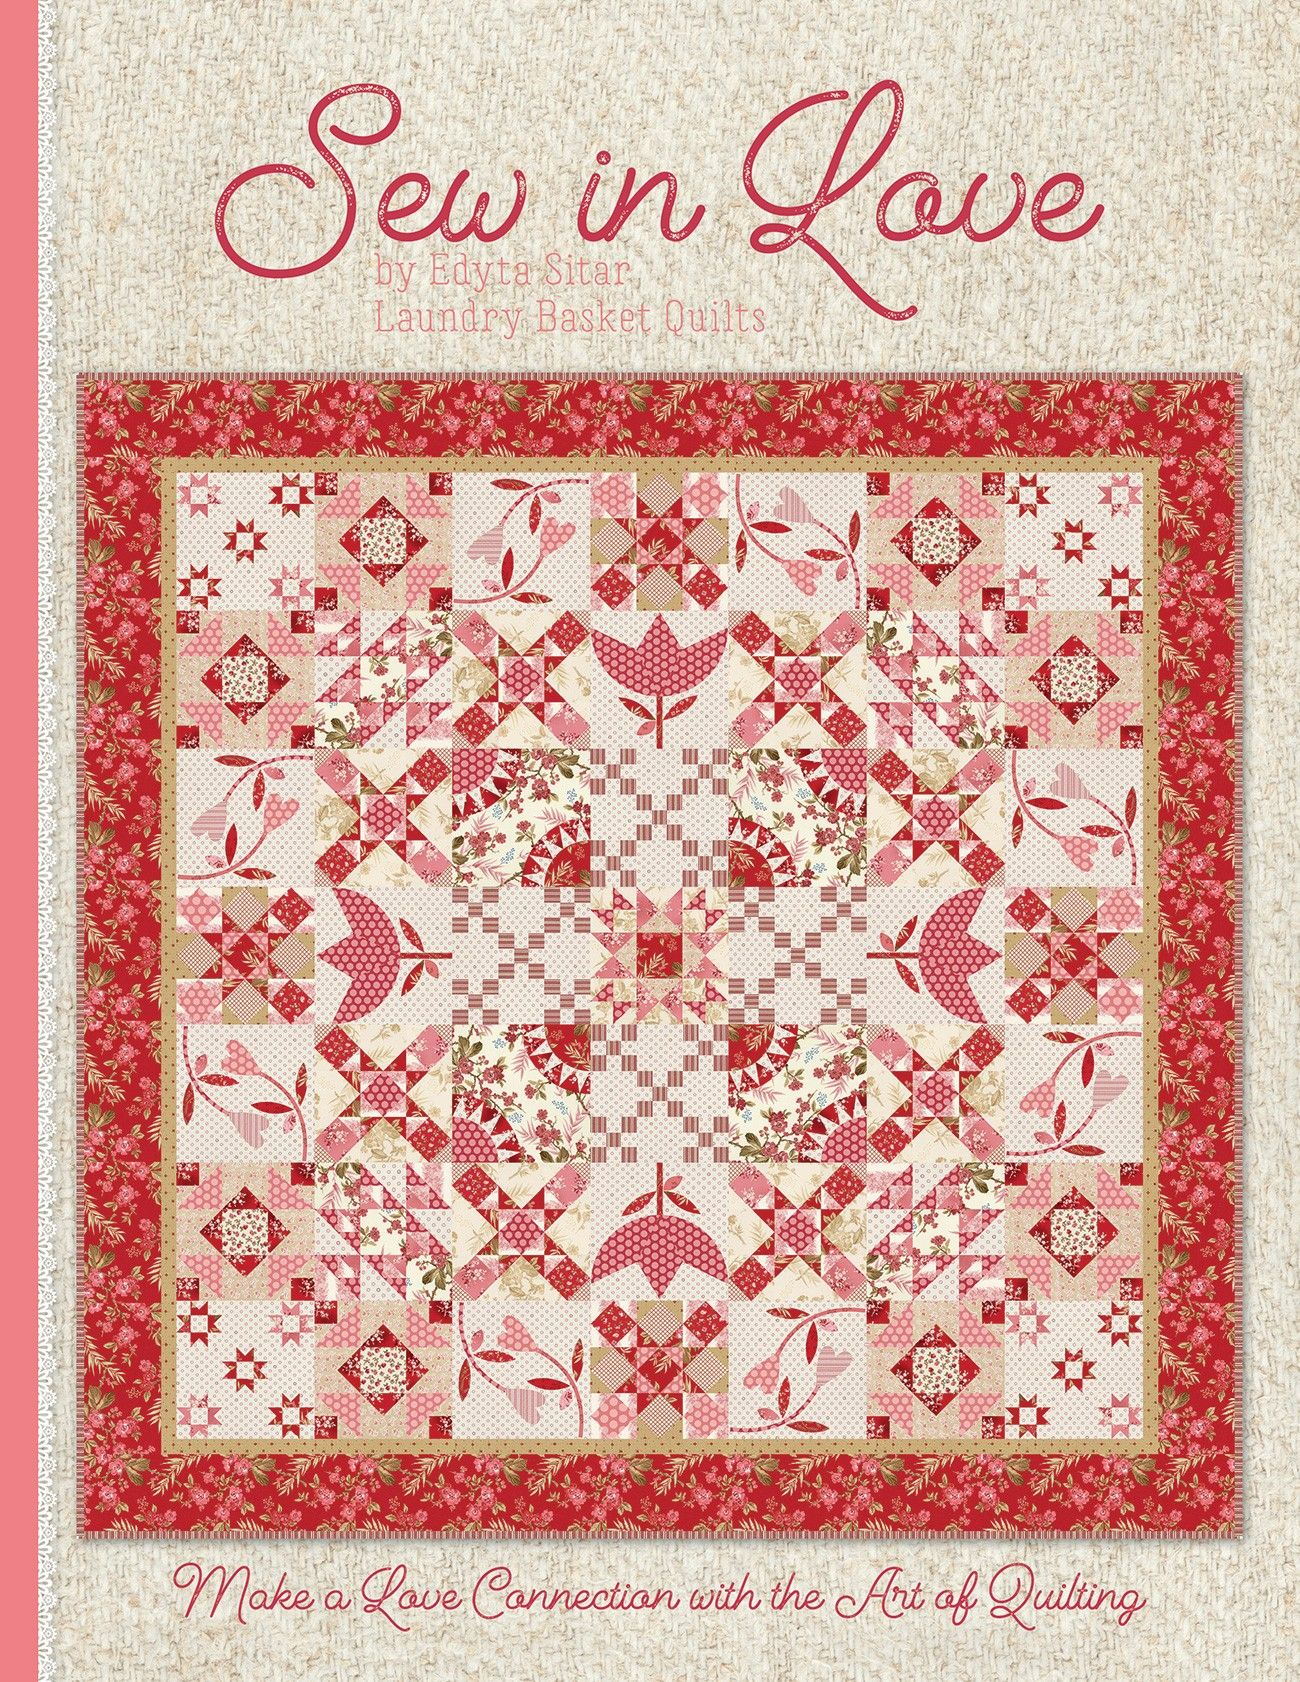 Sew In Love Book By Sitar Edyta Book Quilt Laundry Basket